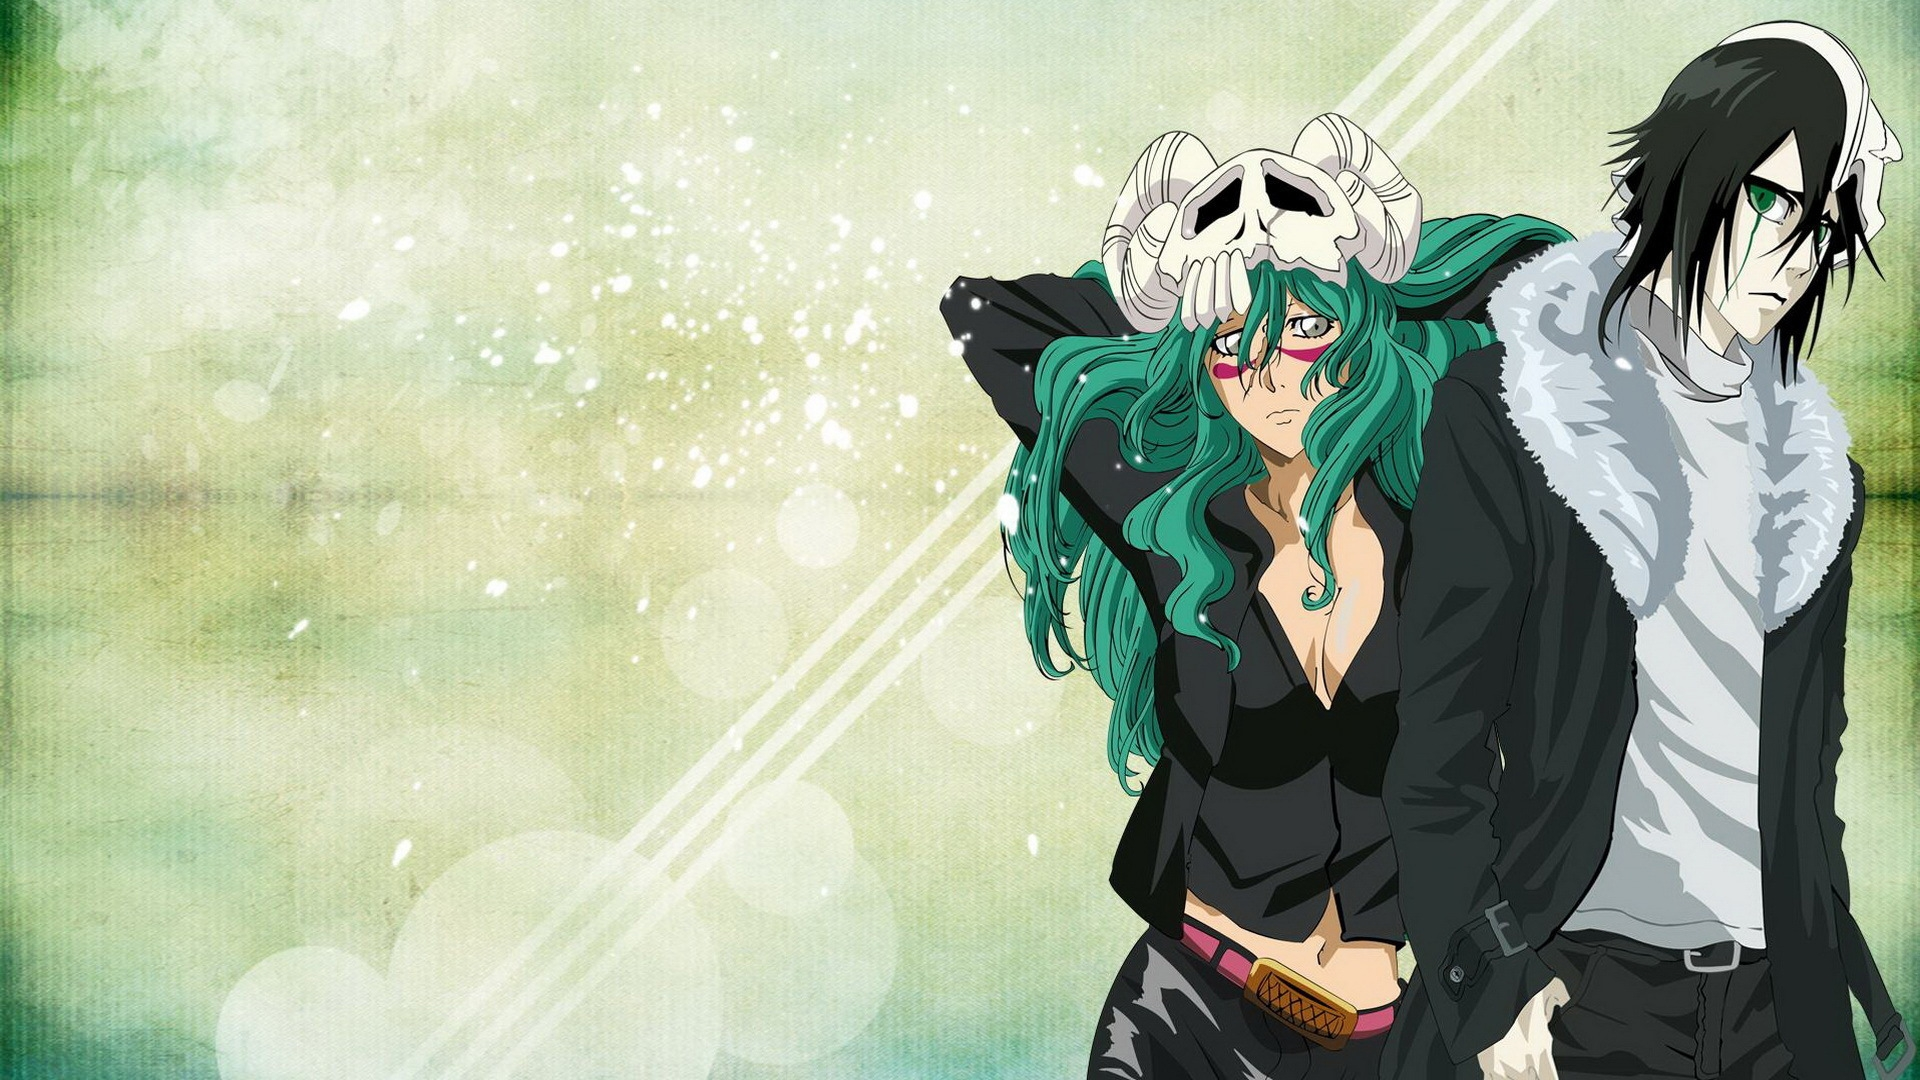 bleach wallpaper 1920 x 1080 - photo #1